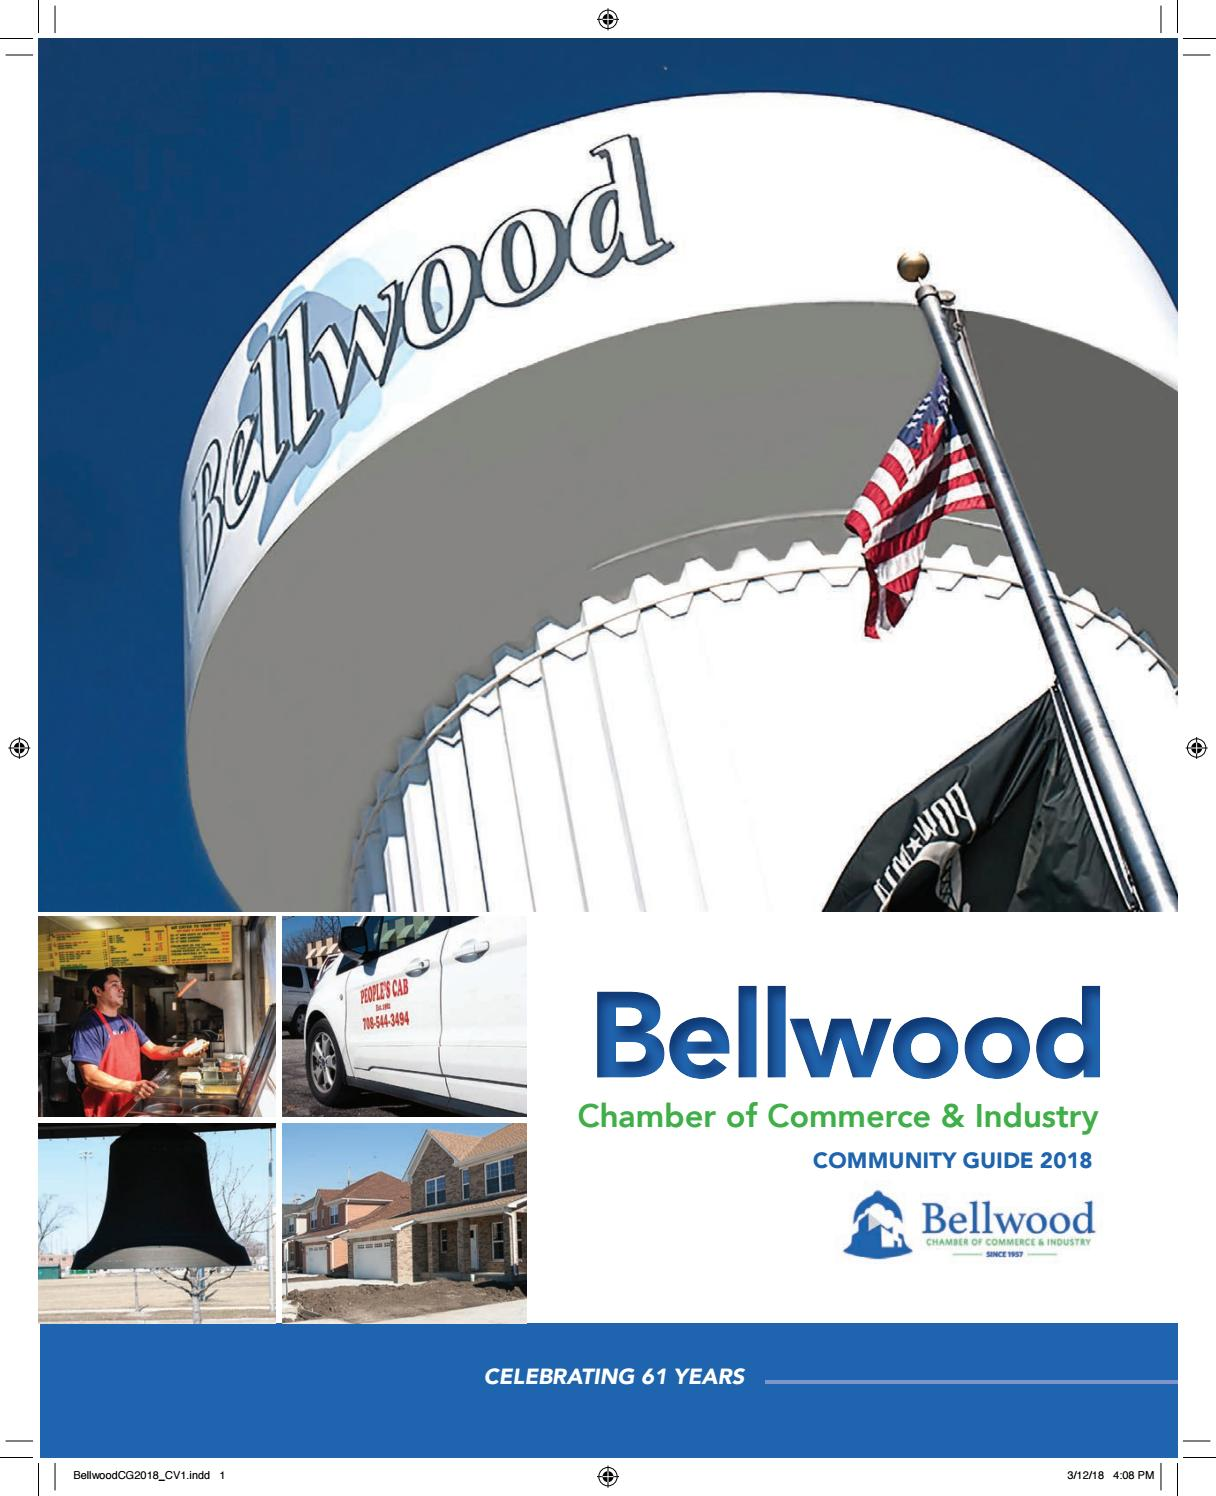 Bellwood chamber of commerce community guide by the village free bellwood chamber of commerce community guide by the village free press issuu fandeluxe Images